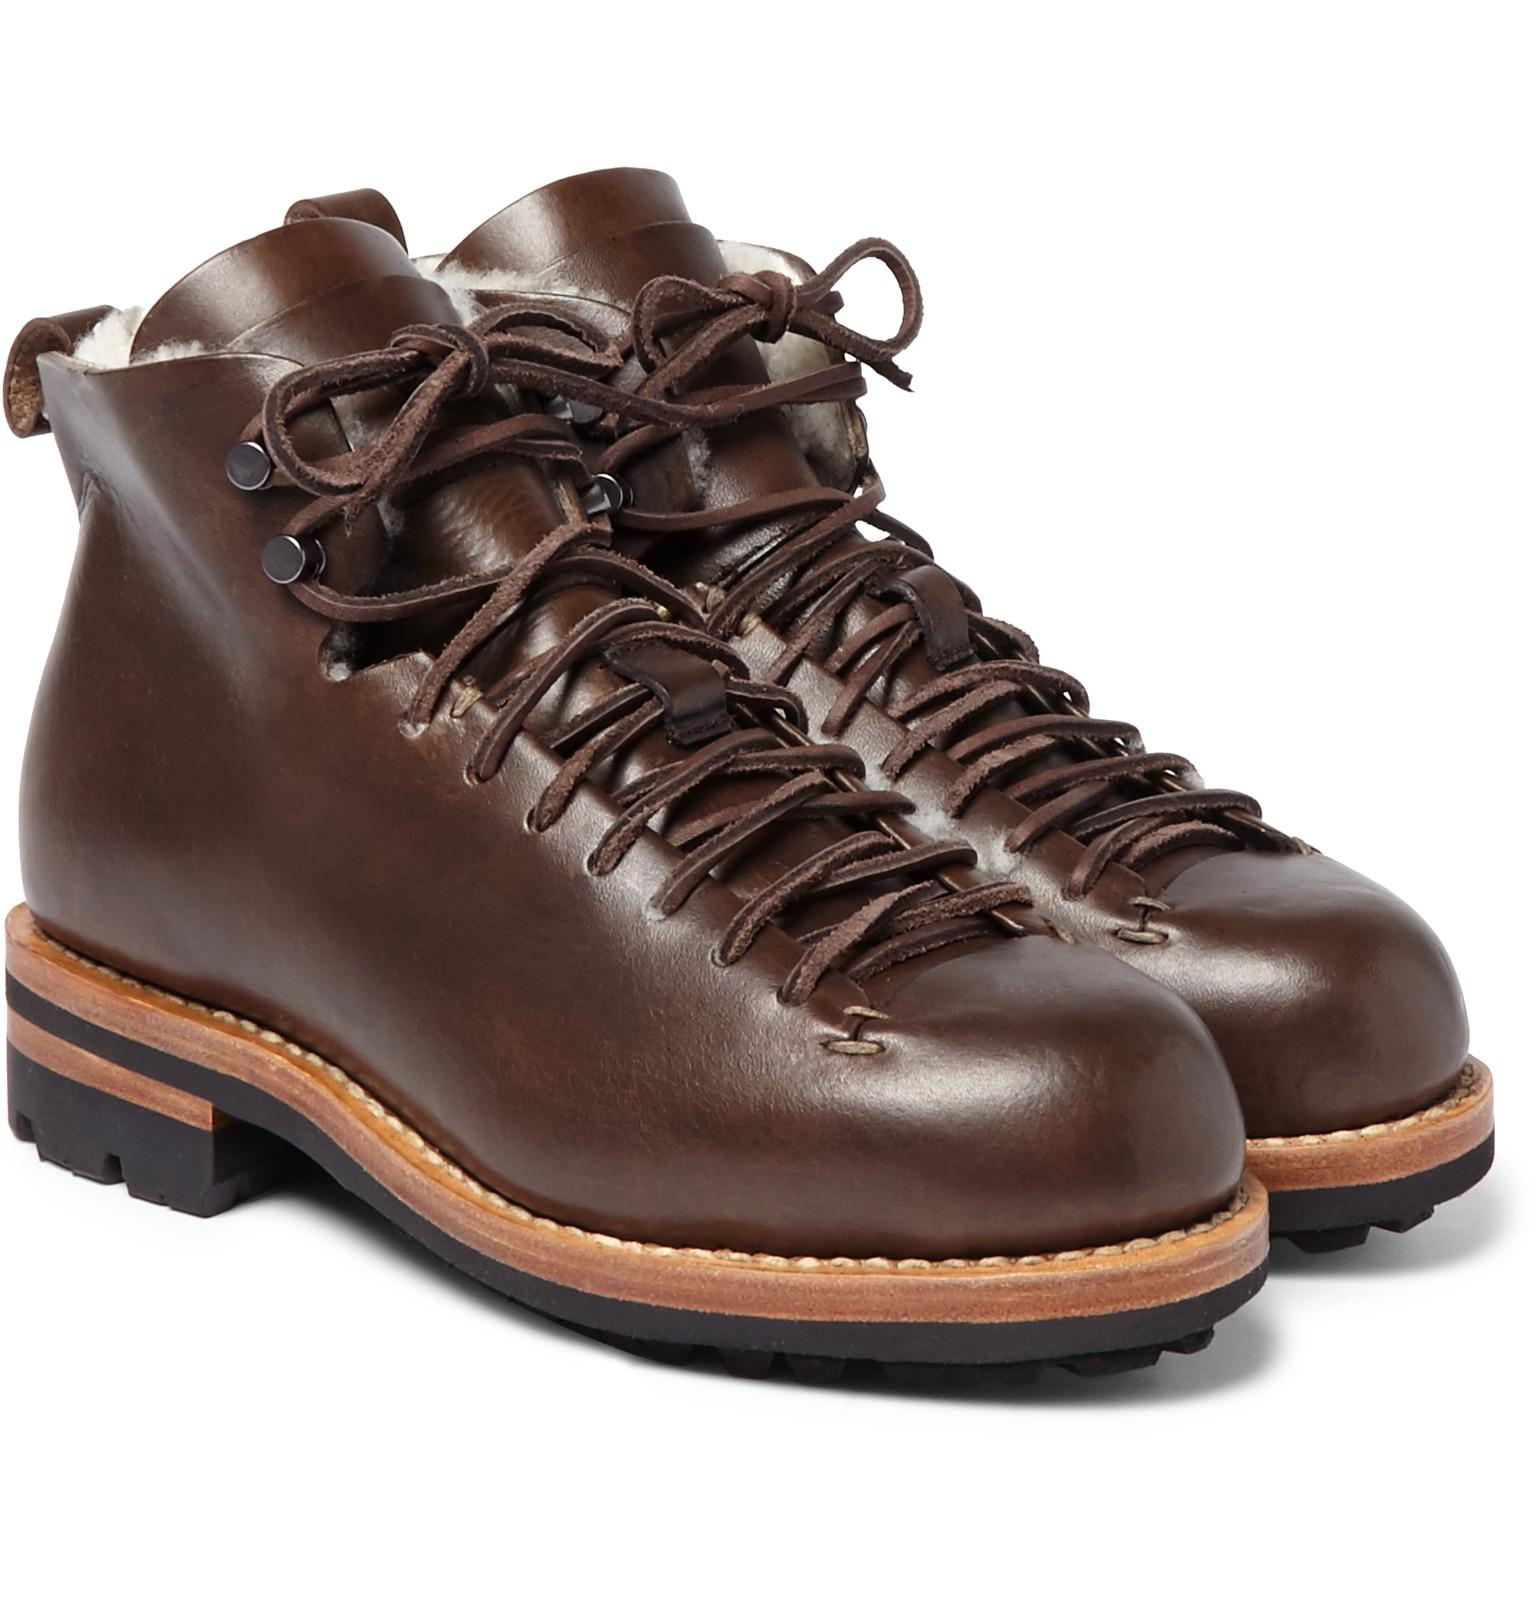 3445de7cd73 Feit - Brown Hiker Shearling-trimmed Leather Boots for Men - Lyst